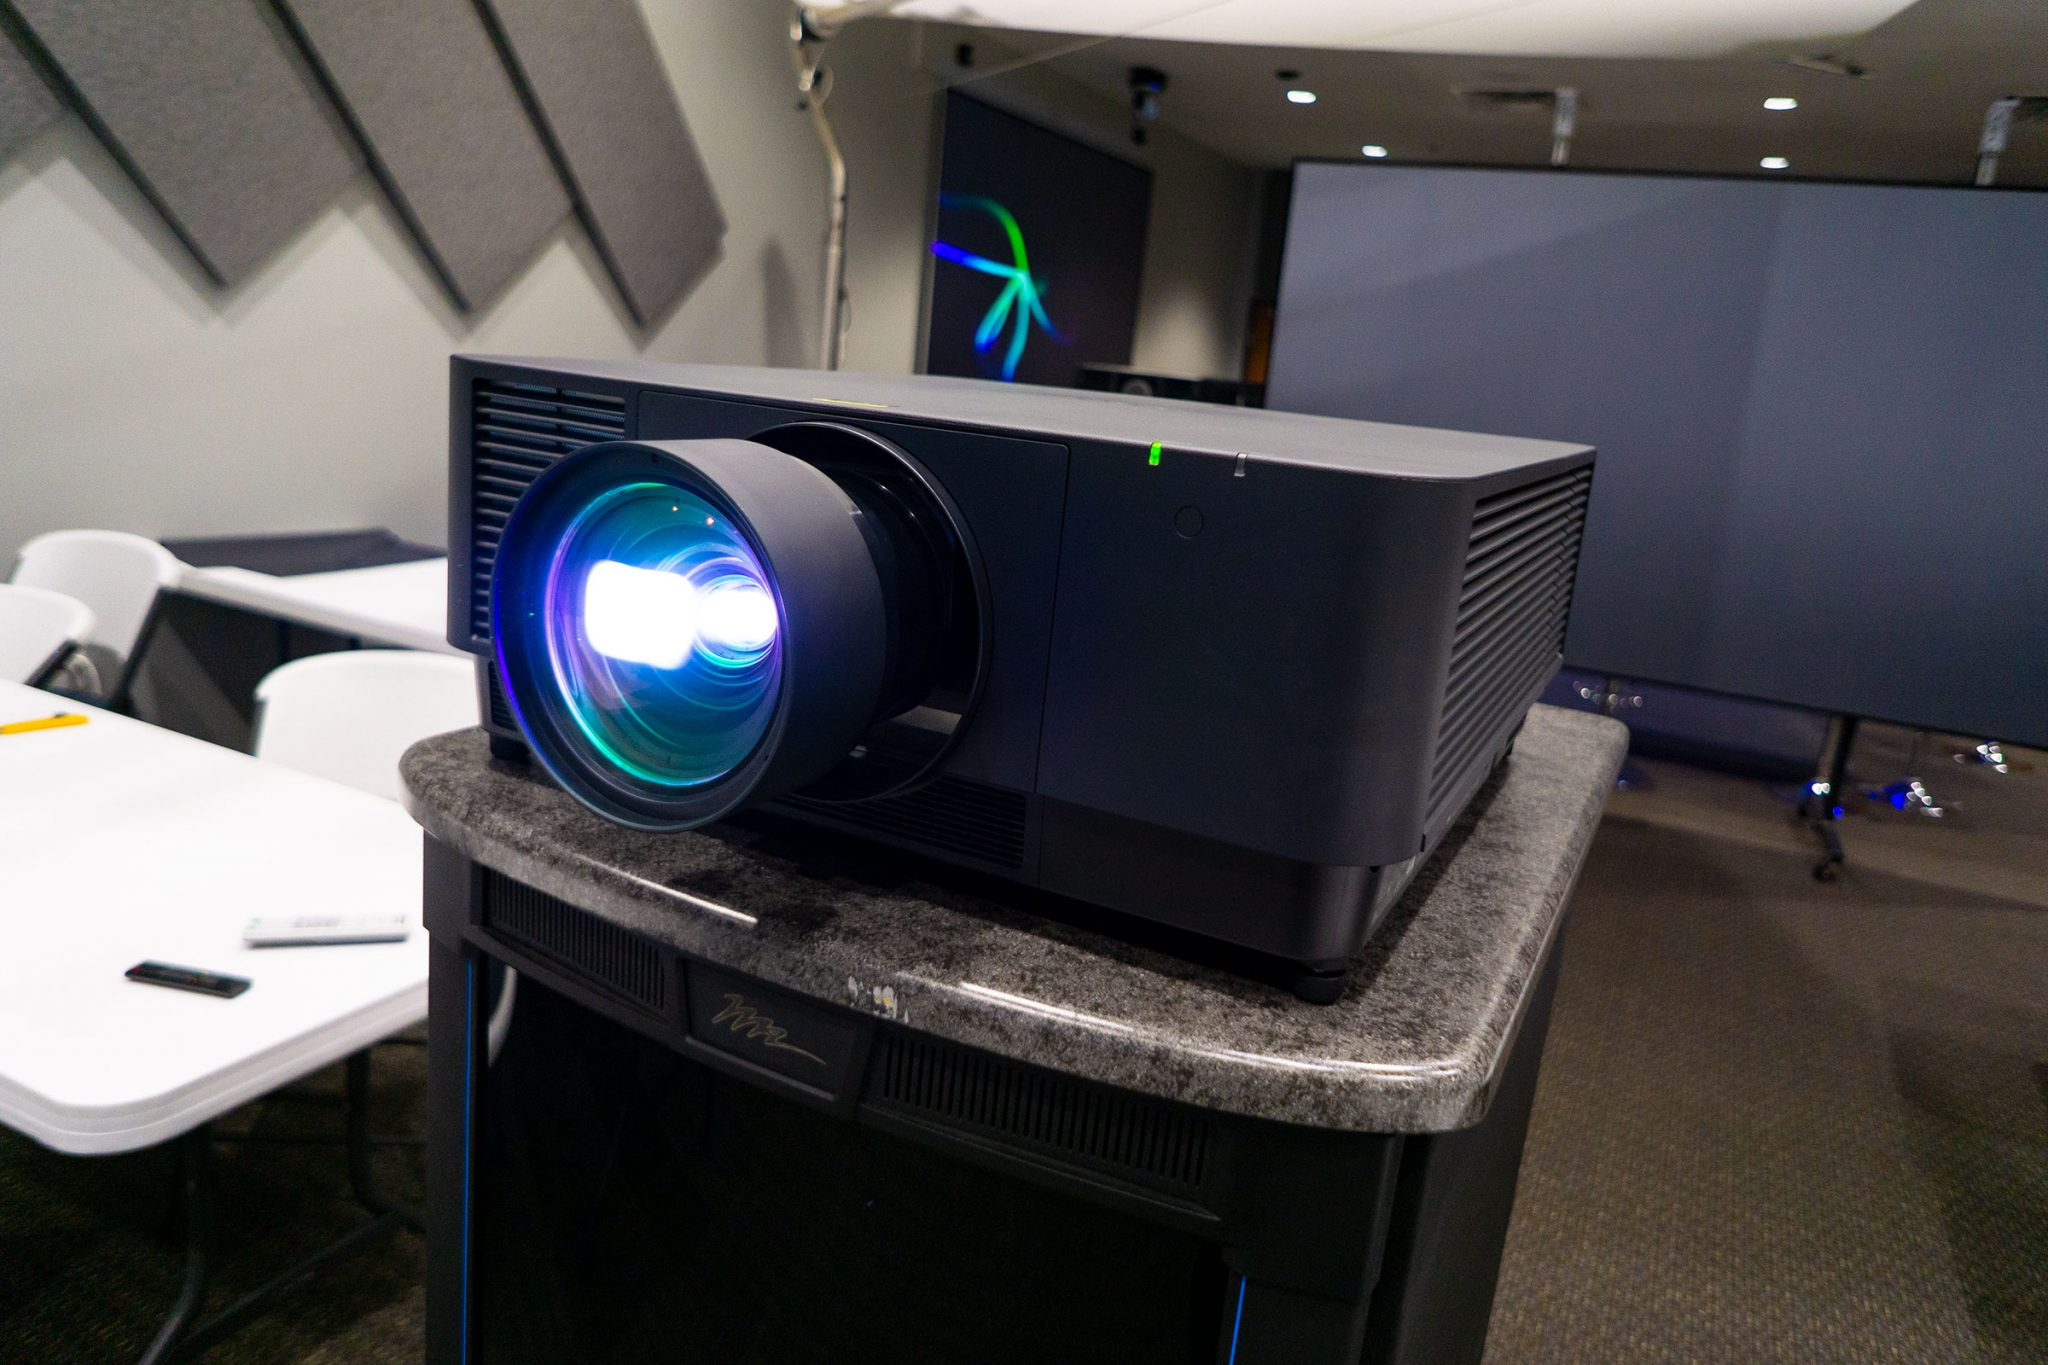 Sony FHZ120L laser projector